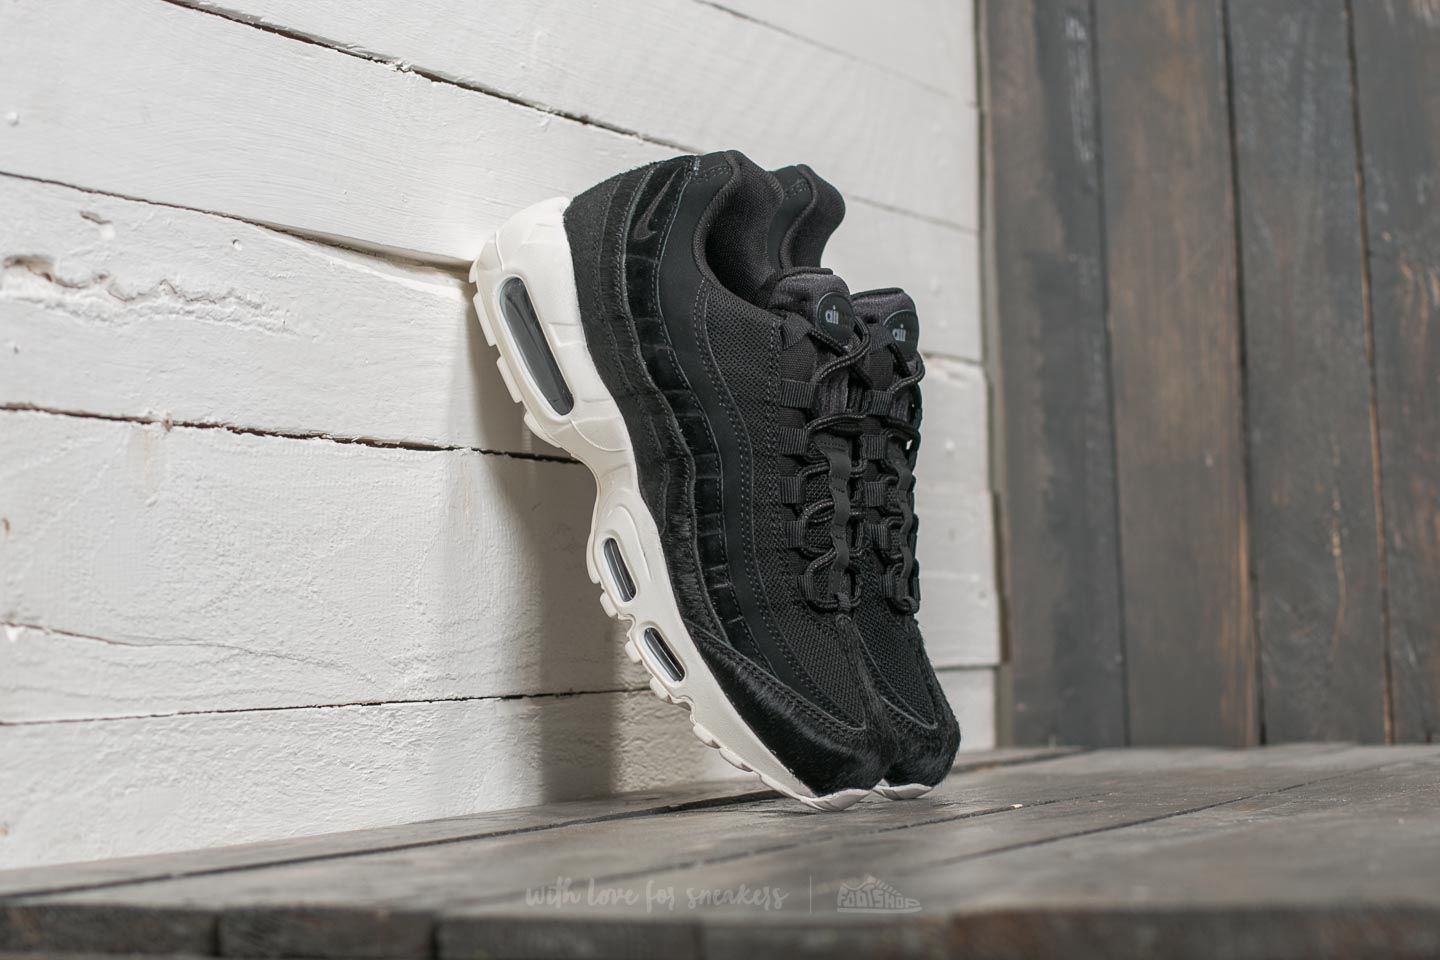 wholesale dealer e0211 08bc6 Nike W Air Max 95 LX Black/ Black/ Dark Grey/ Sail | Footshop